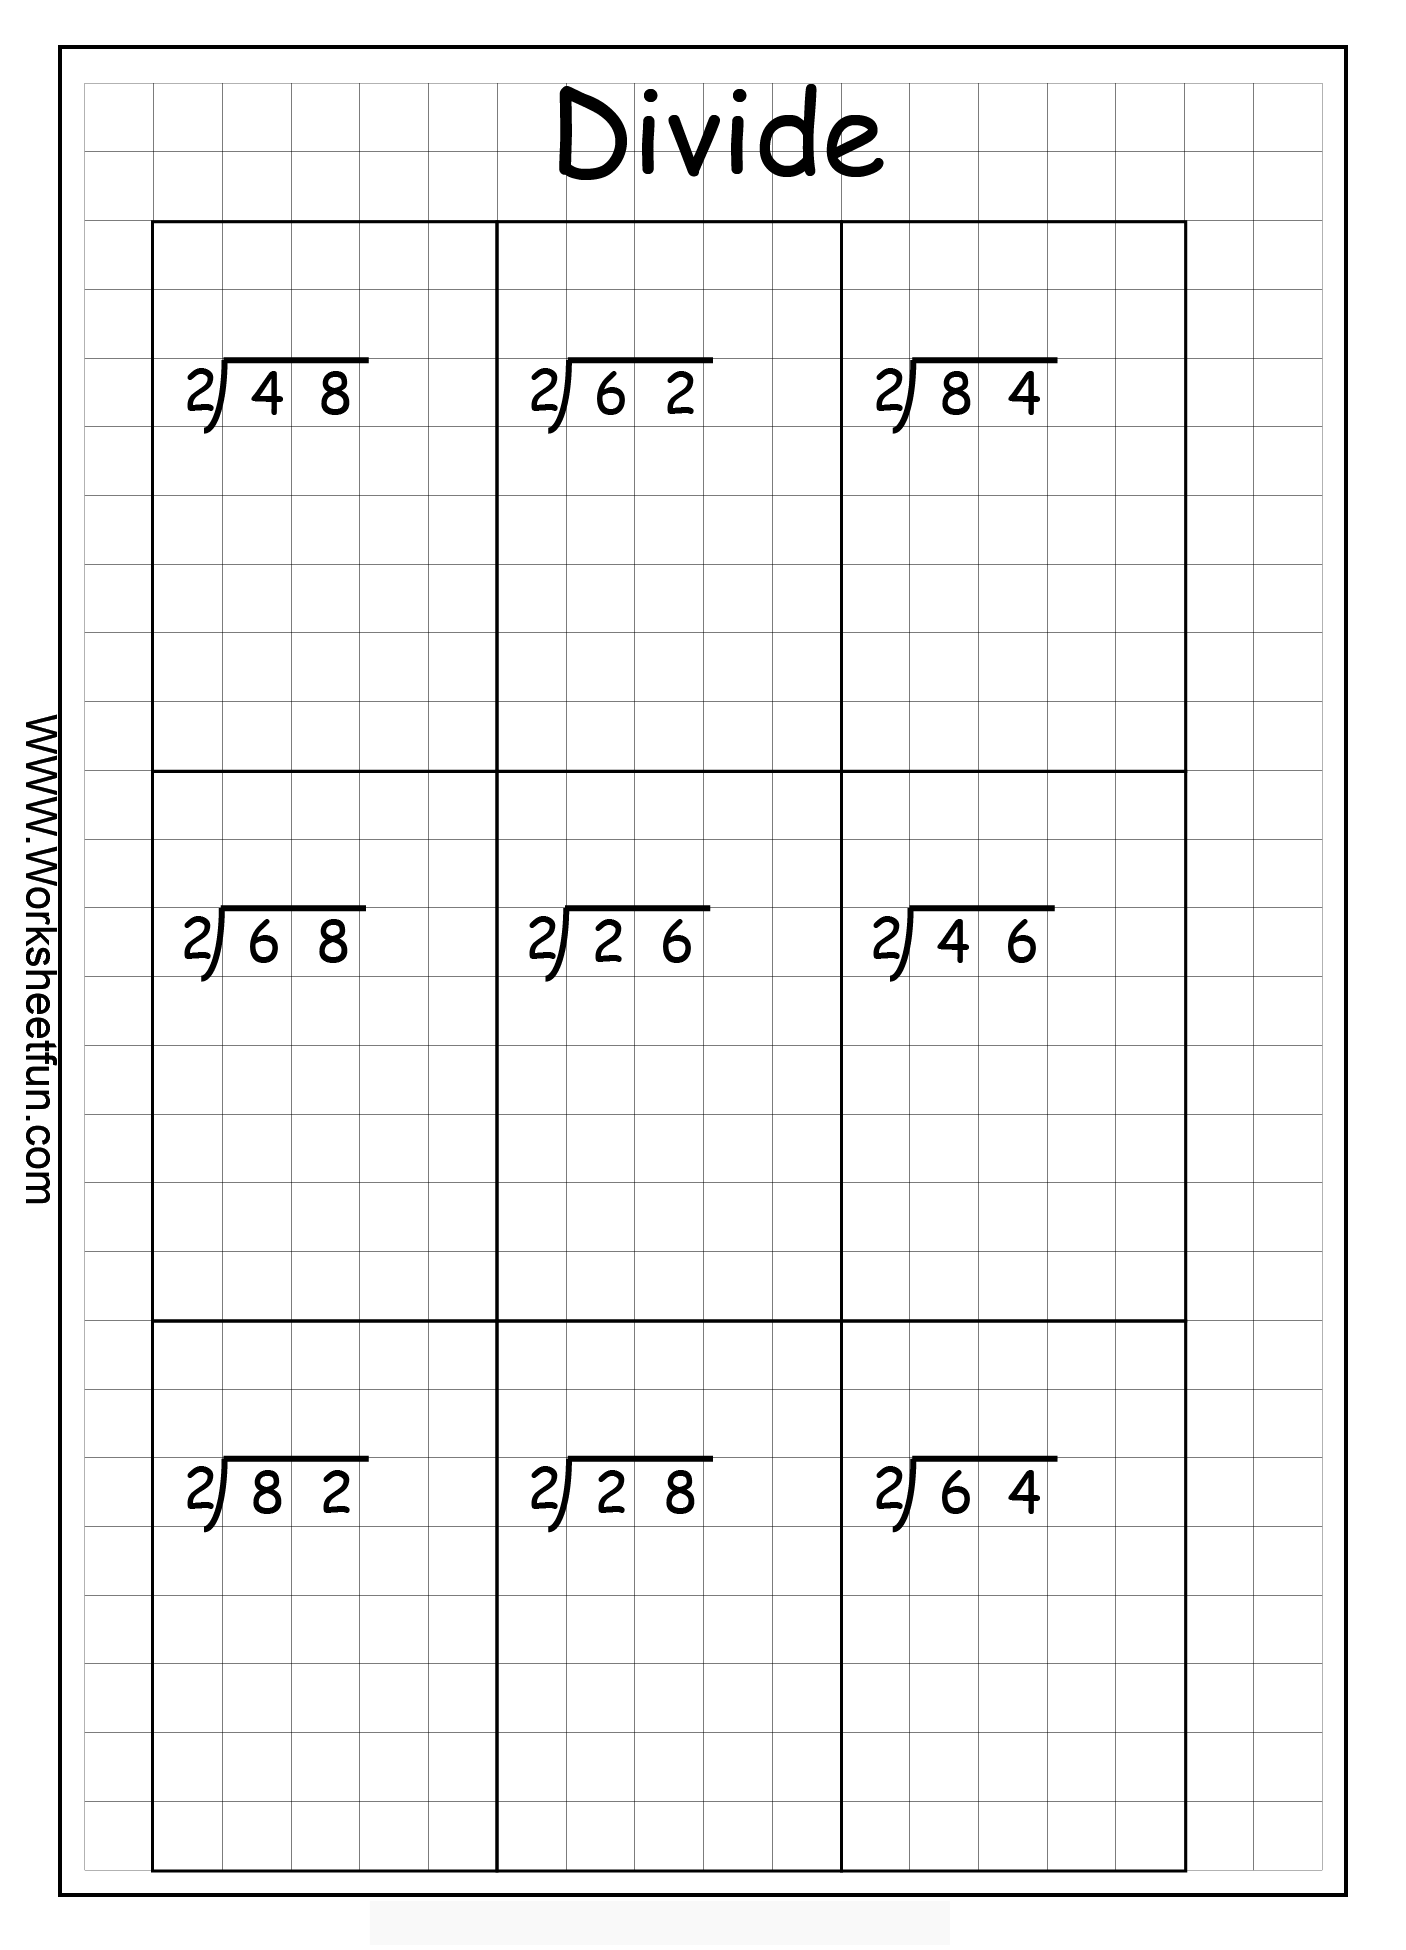 Long Division 2 Digits By 1 Digit No Remainder 10 Worksheets – Division Worksheets with Remainders